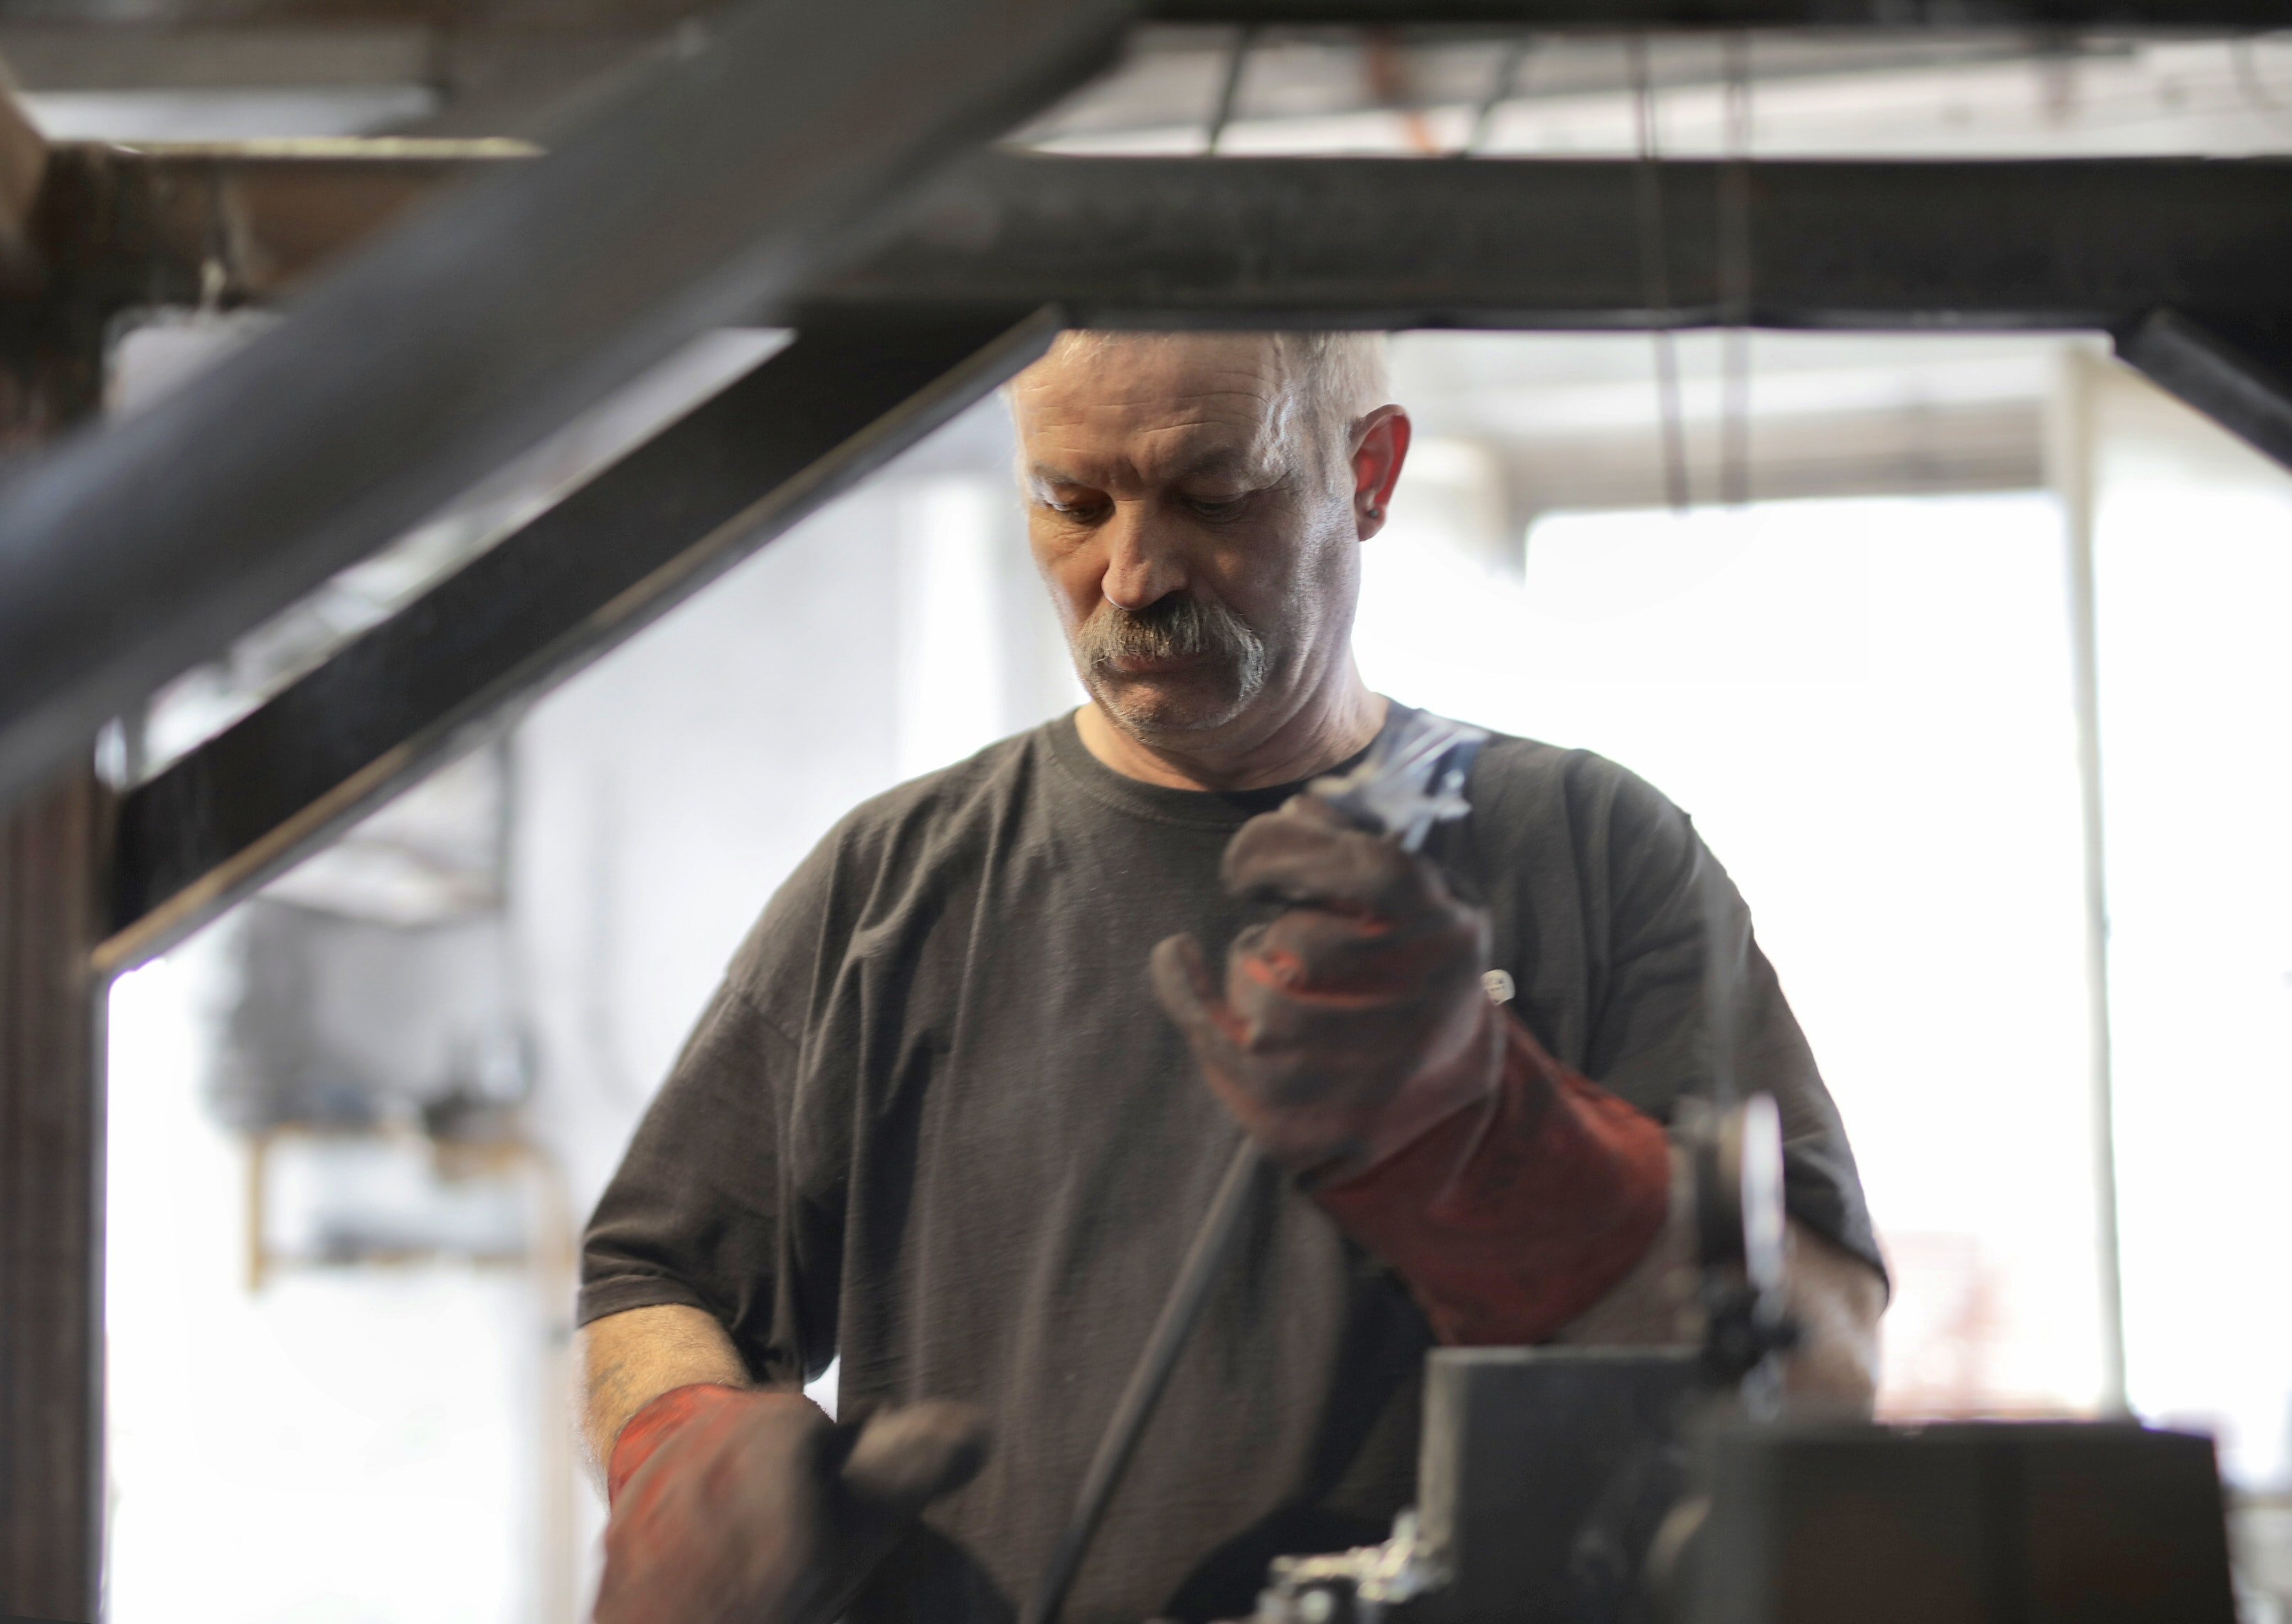 Pictured - An elderly fitter working in a workshop | Source: Pexels